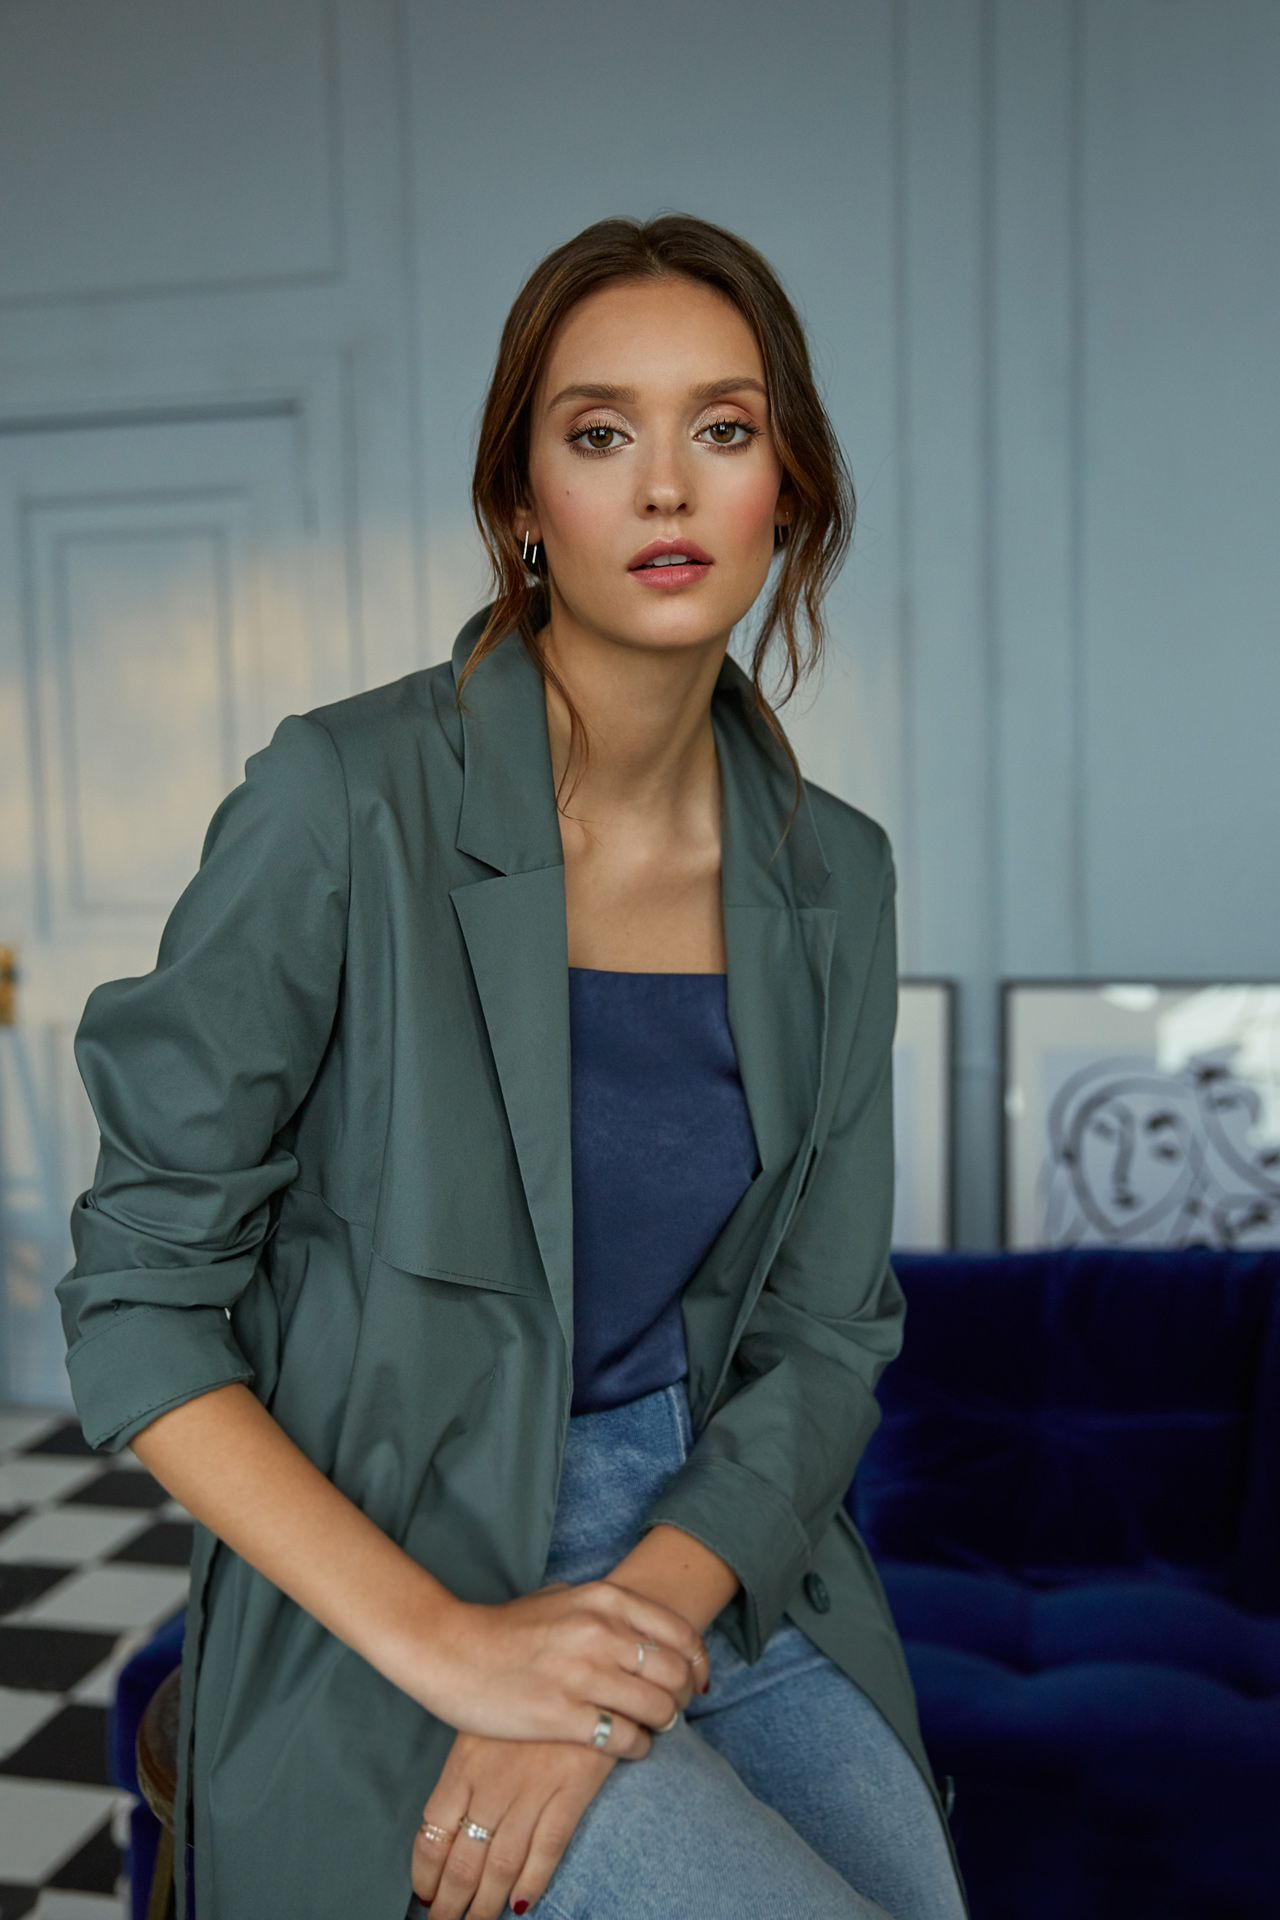 white woman model sitting on high wood stool wearing dark blue-green trench coat looking at camera by Oumayma B Tanfous for Lancôme